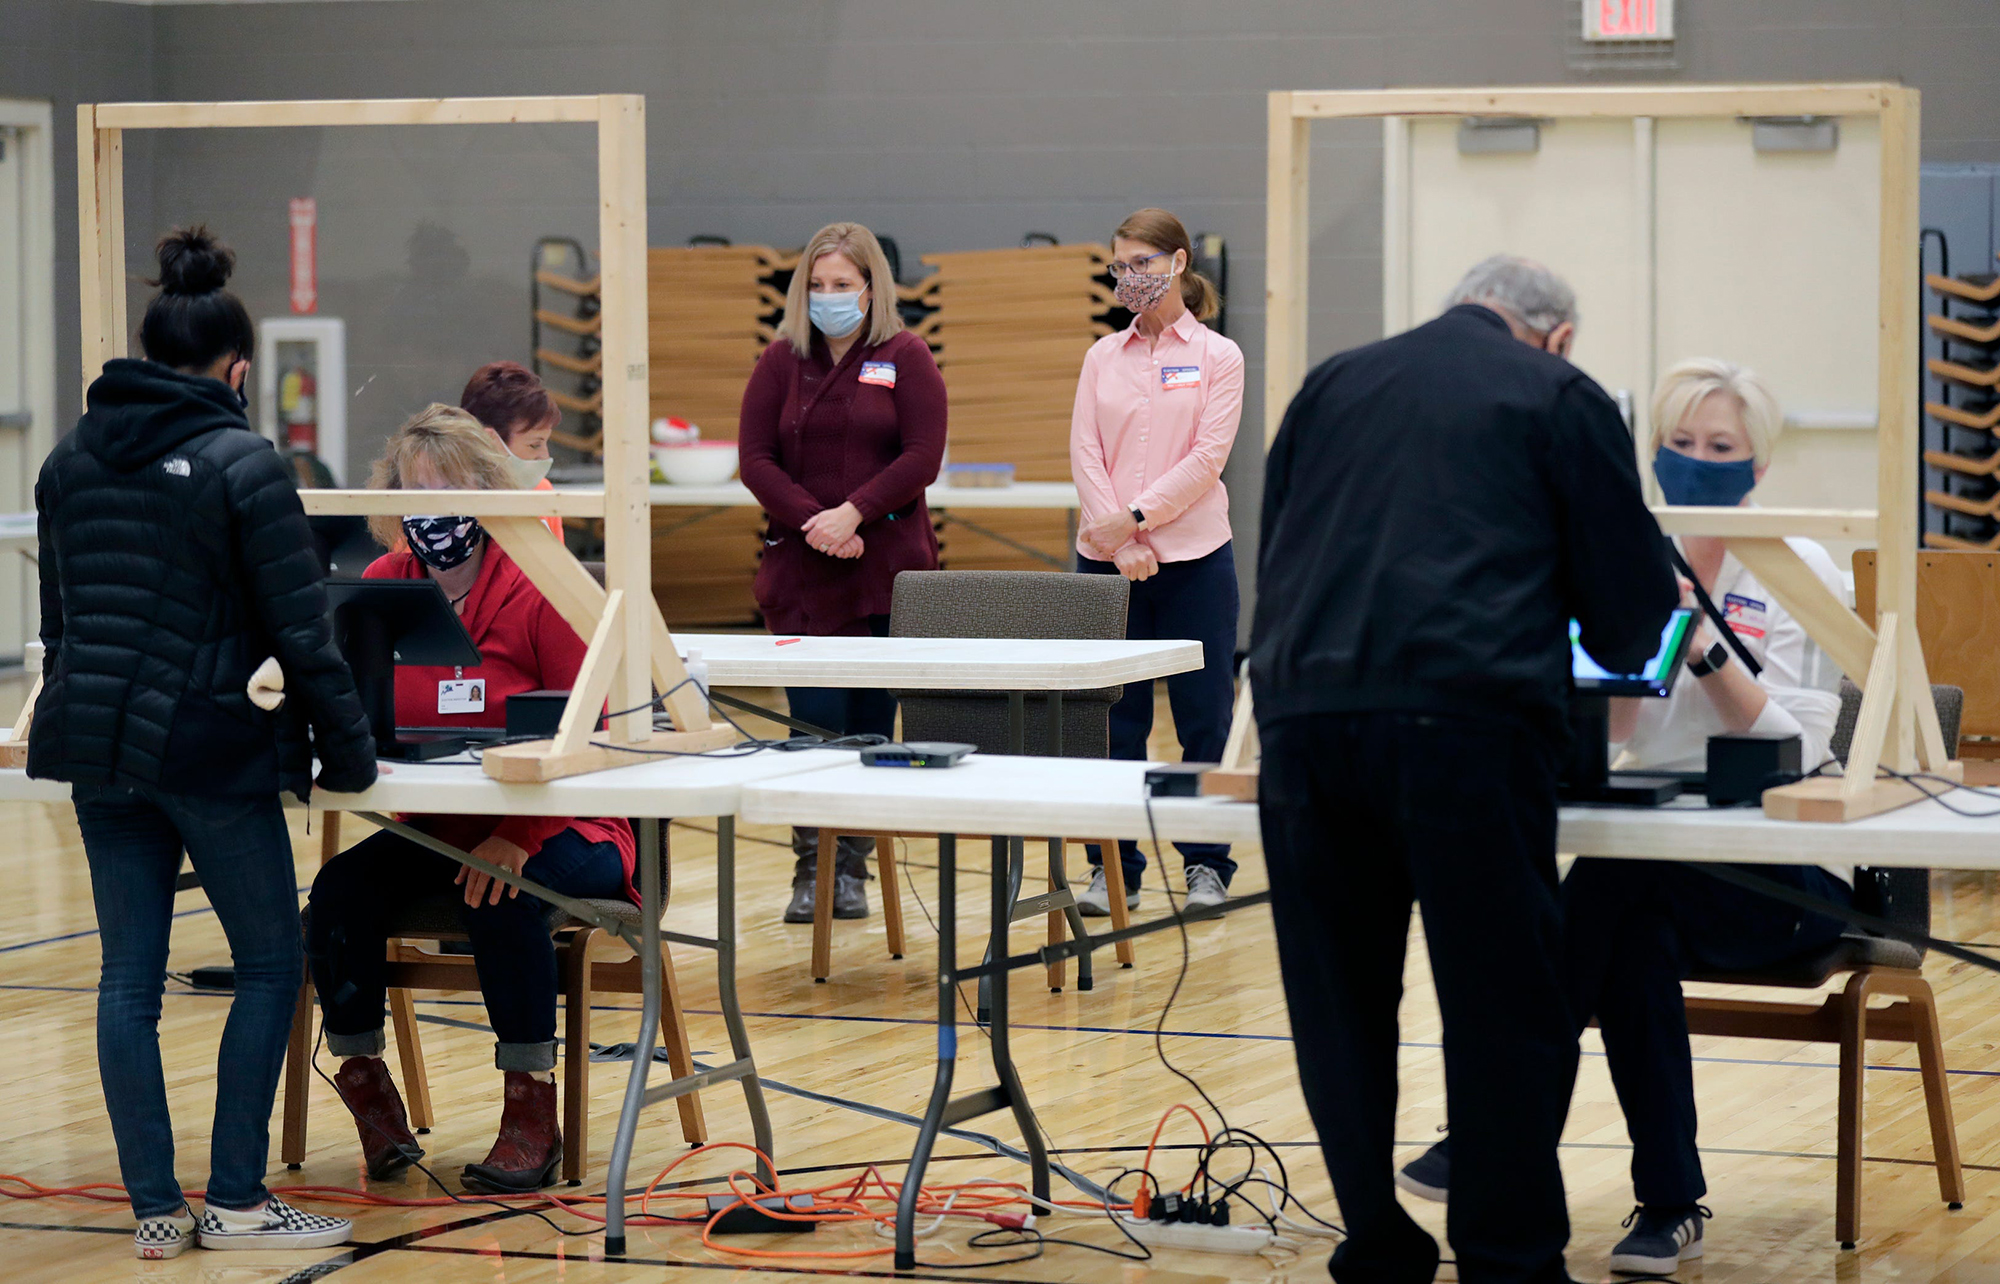 Poll observers watch as citizens receive their ballots to vote at Faith Lutheran Church Celebration Ministry Center on November 3, 2020, in Appleton, Wis.